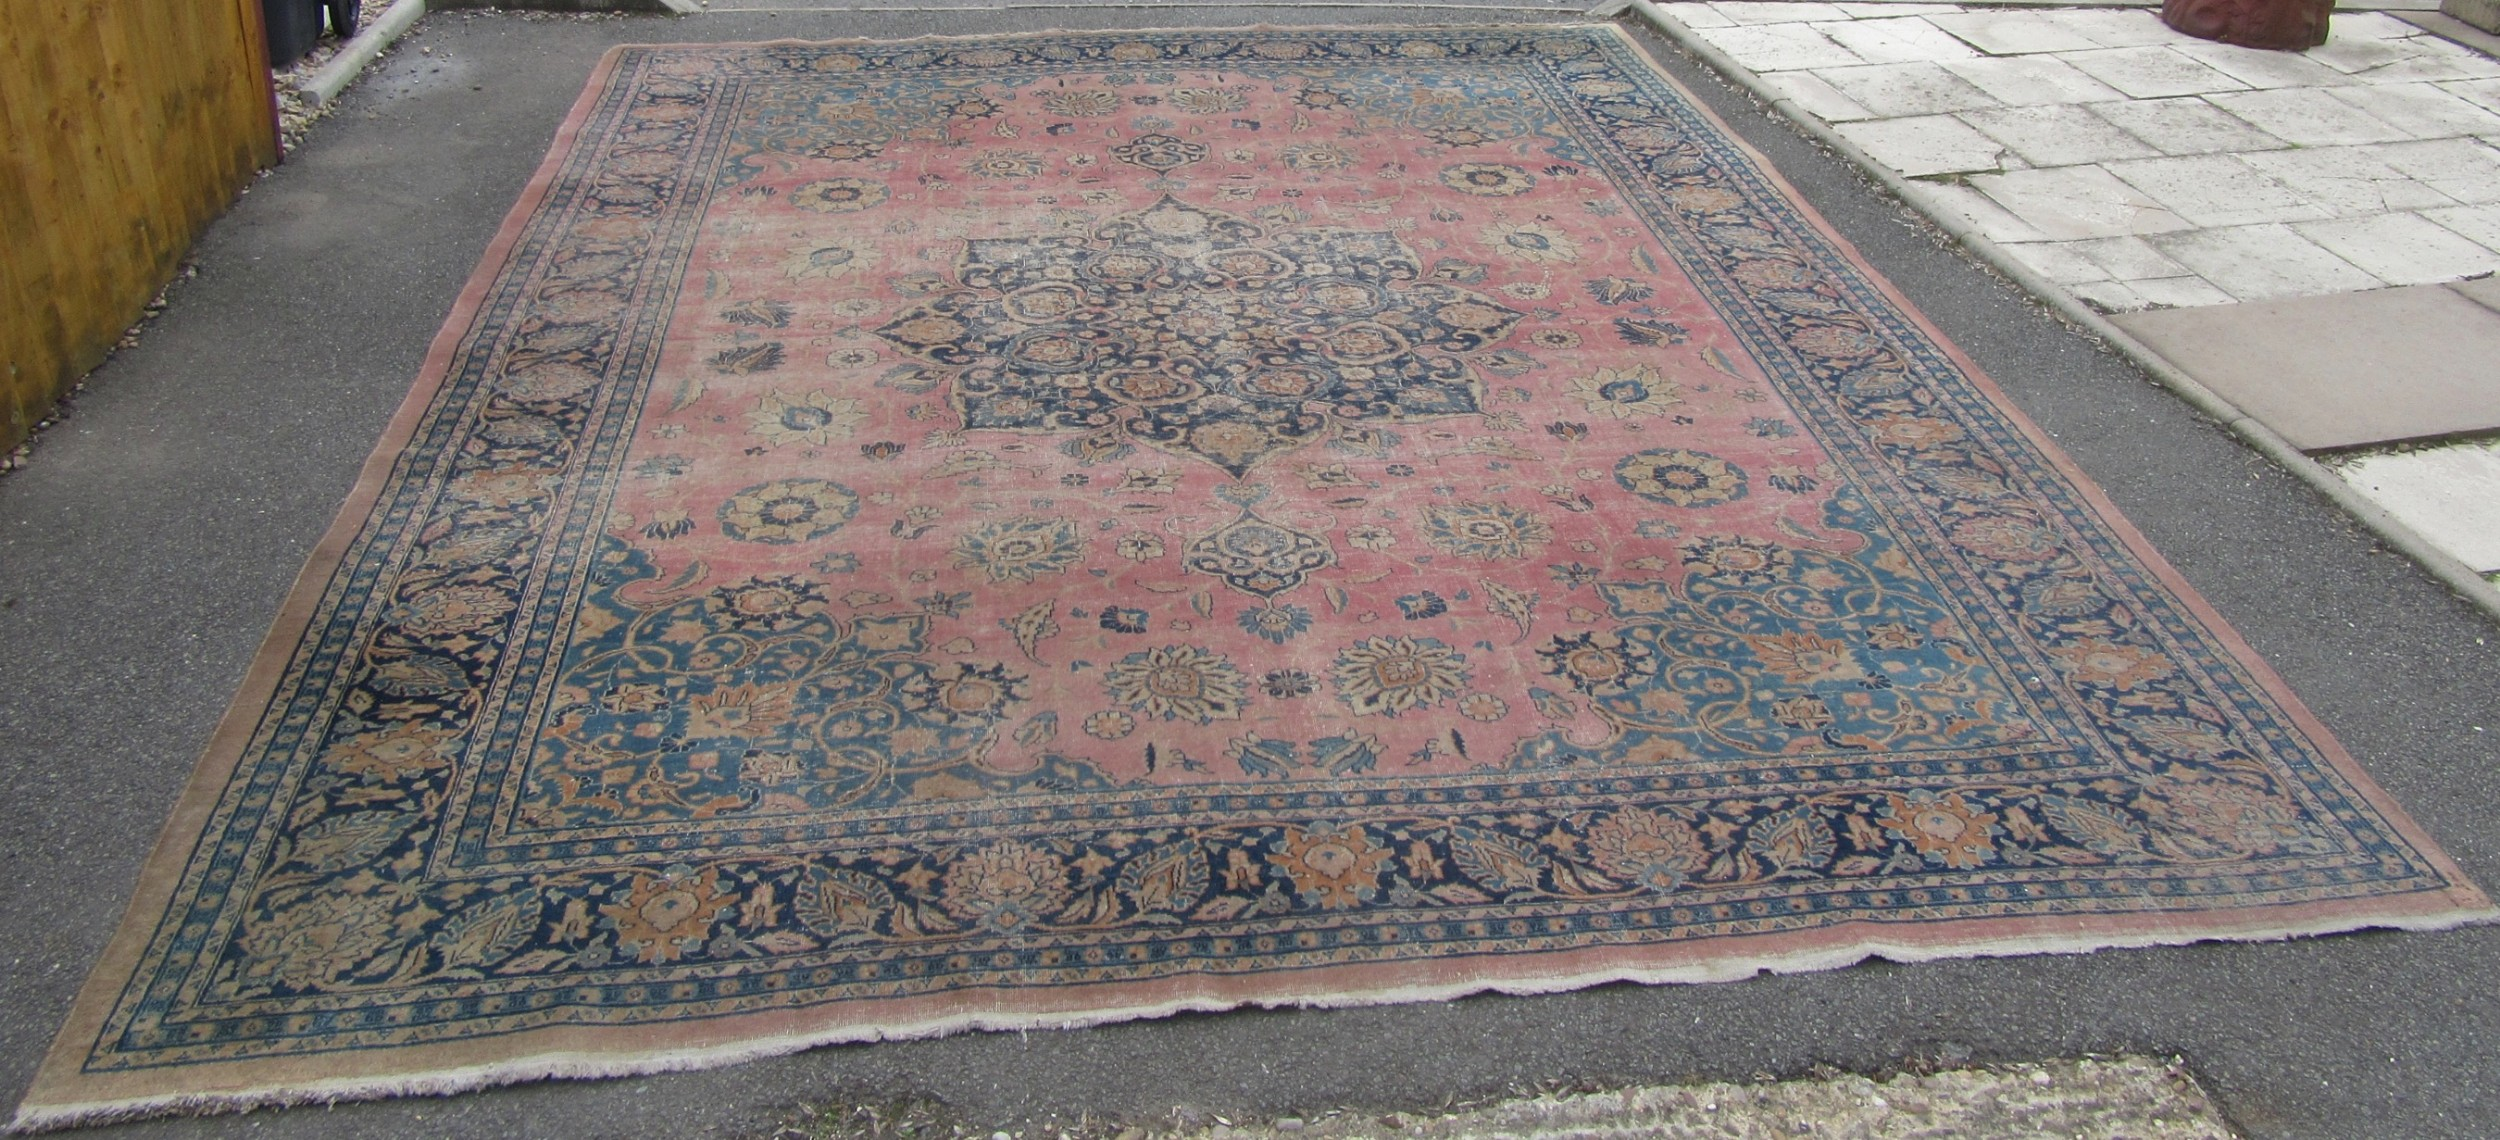 very attractive pretty antique country house shabby chic persian tabriz carpet rug